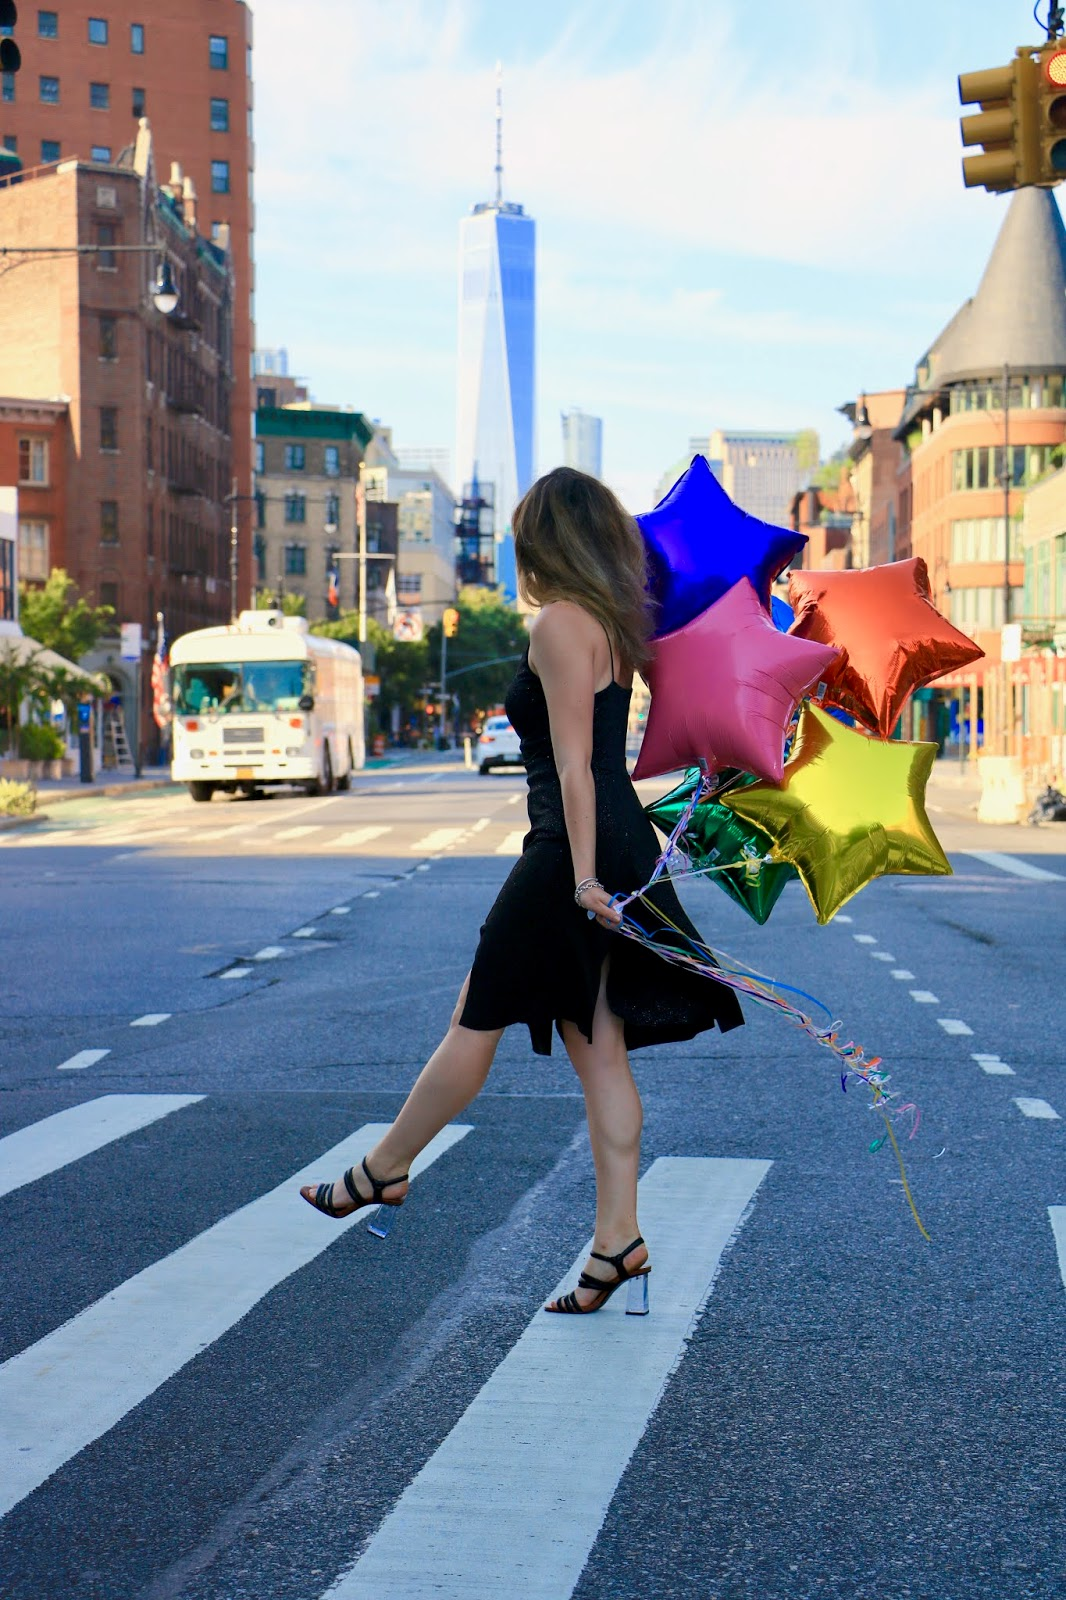 Nyc fashion blogger Kathleen Harper's New York City balloon photo shoot.